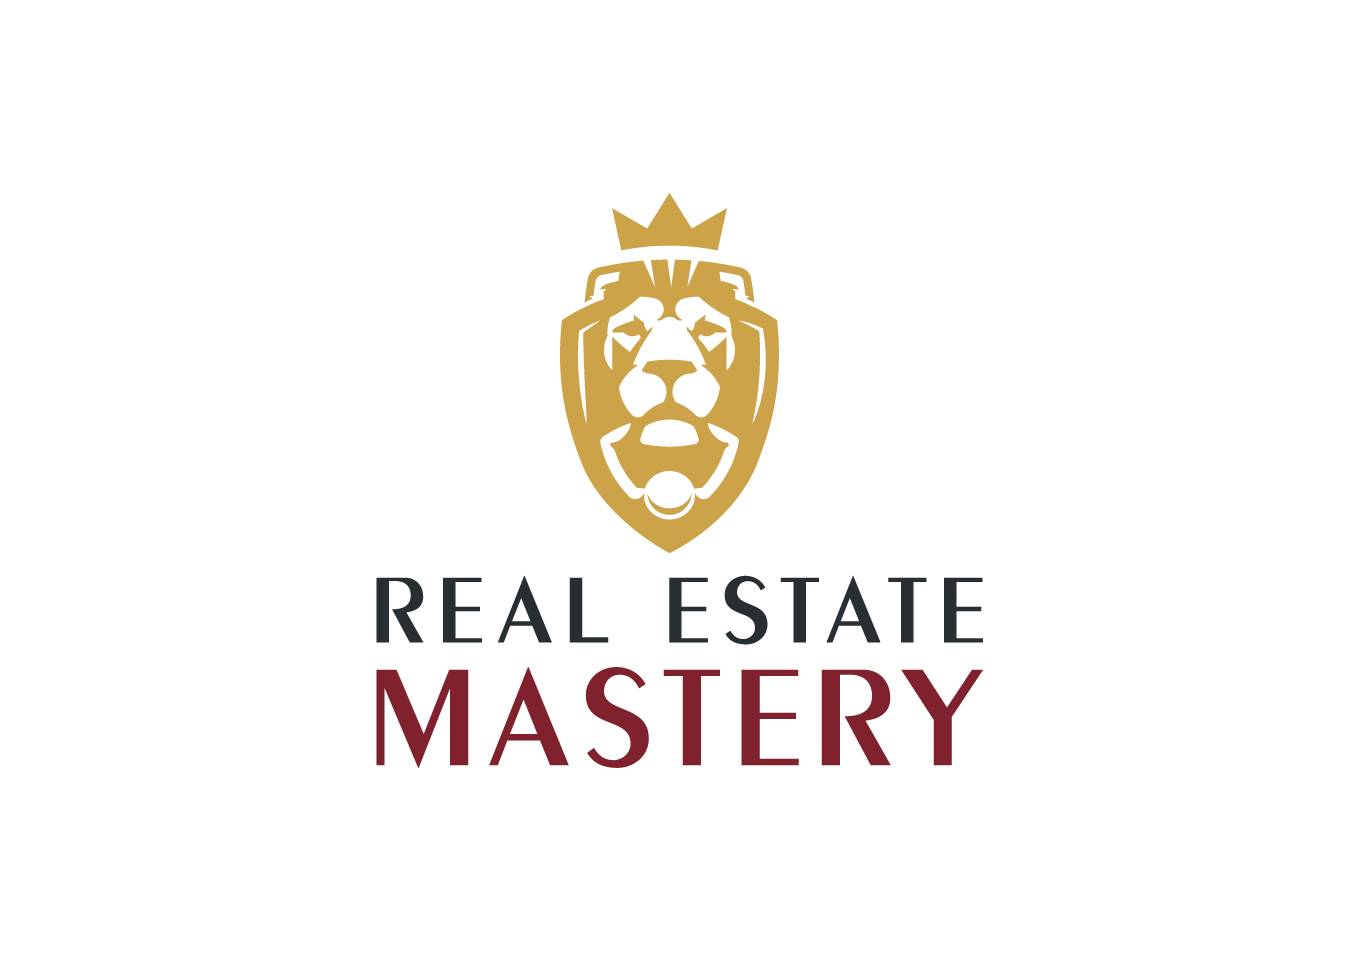 Design lux logo to attract millennials for real estate course.